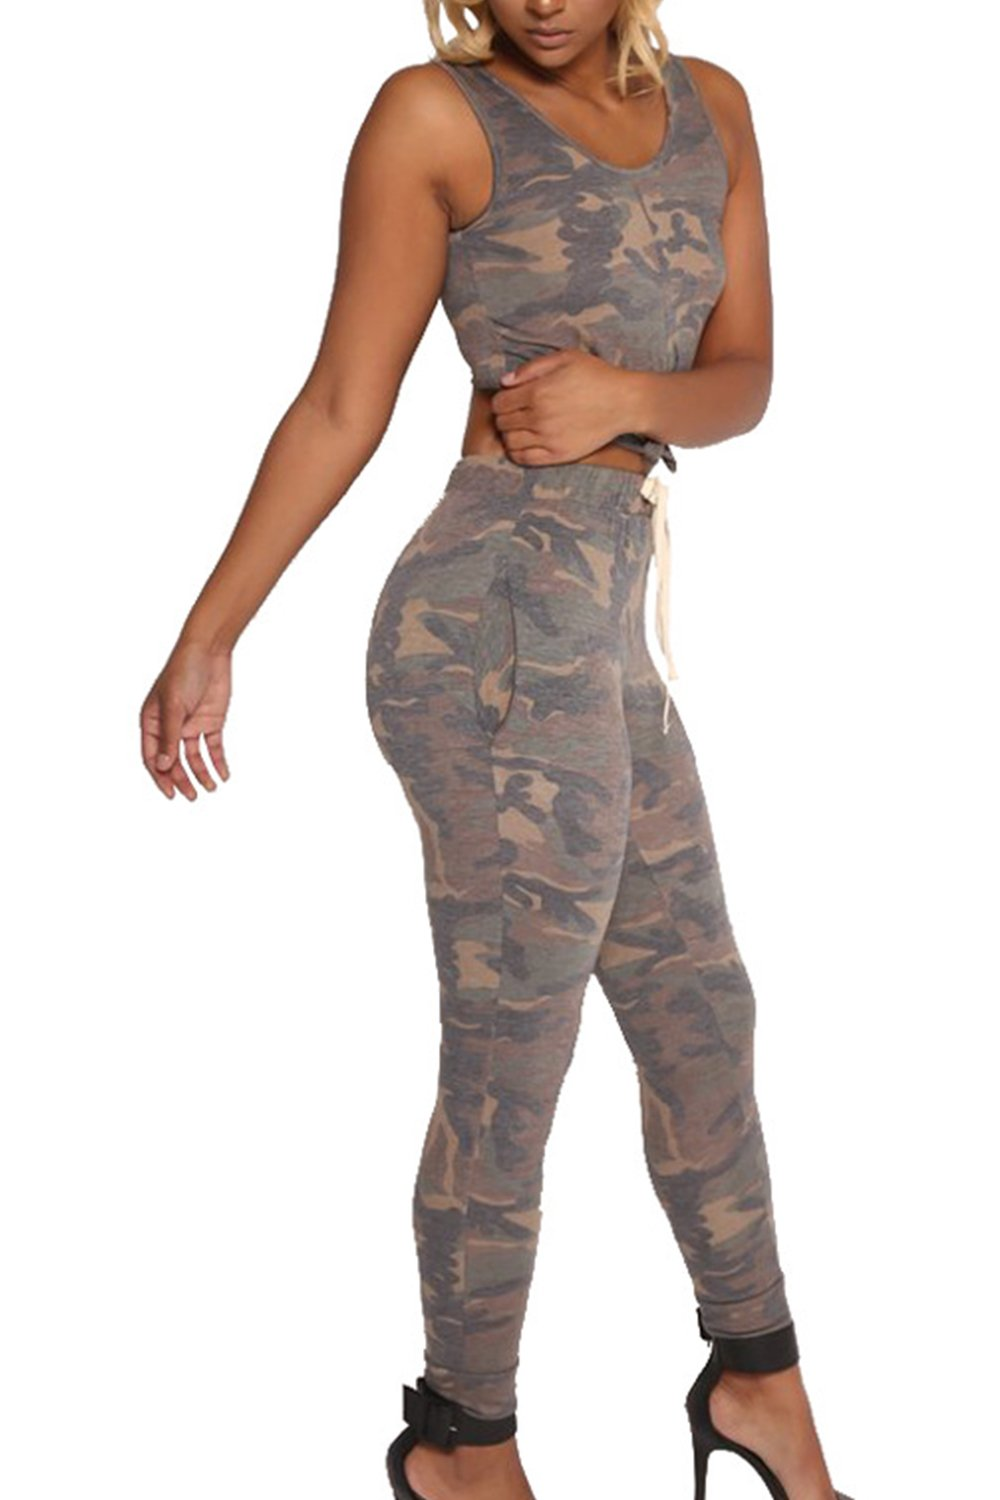 Women's Casual Camouflage Crop Top& Pants Slim 2 Pieces Suits CAFZ487